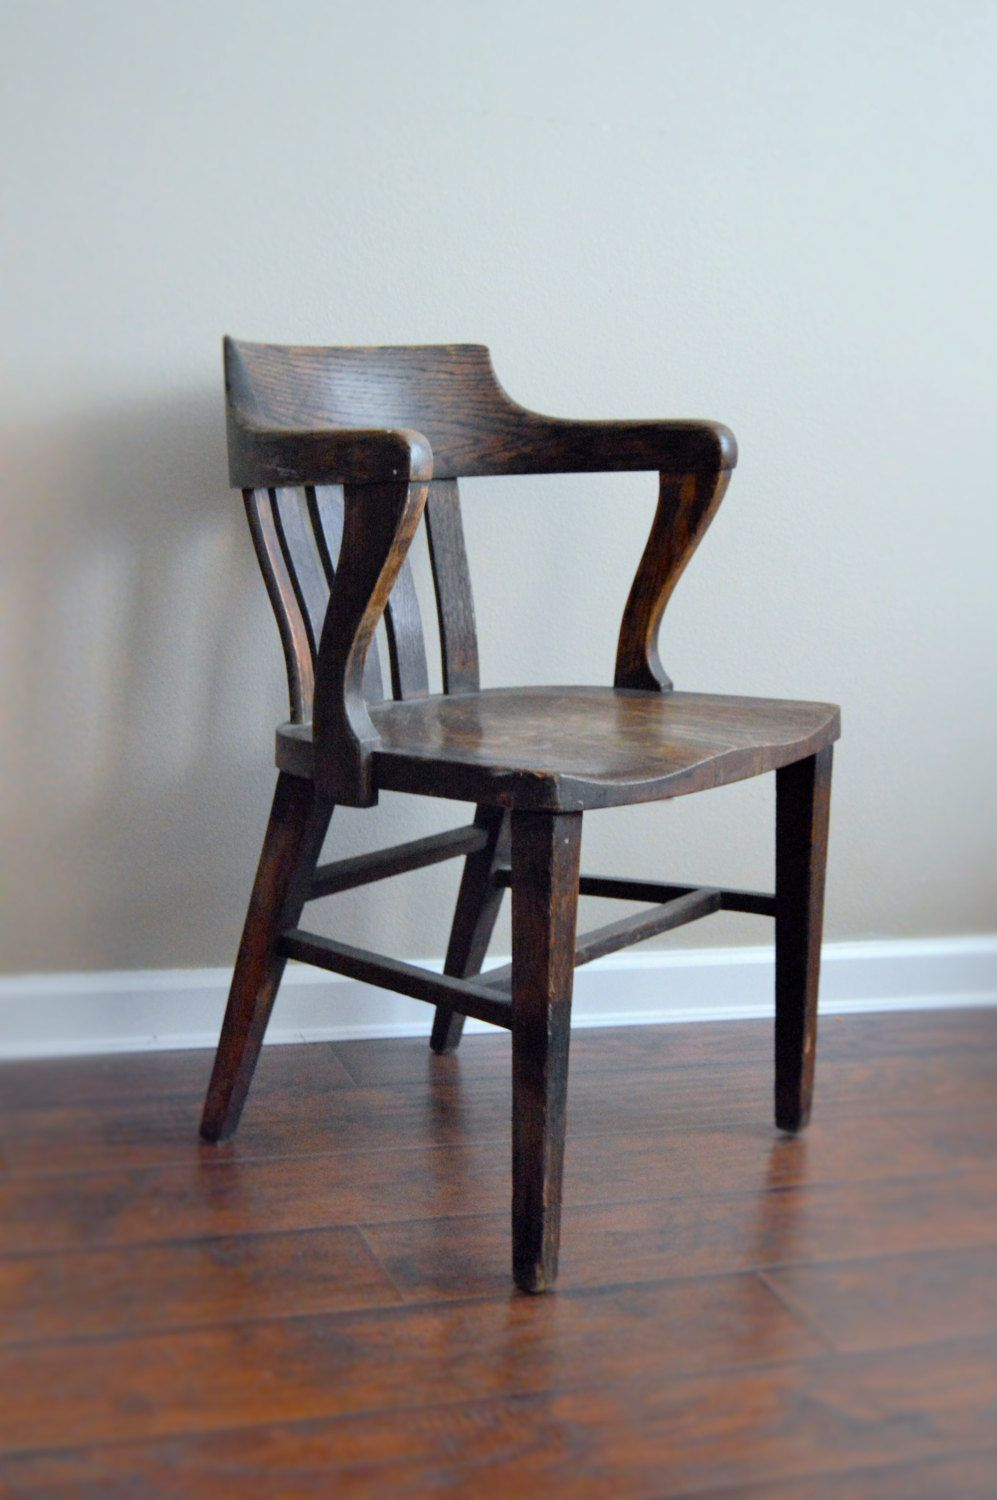 Antique bankers chair antique oak office jury court vintage office chair library primitive rustic chair accent chair desk chair by generationupcycle